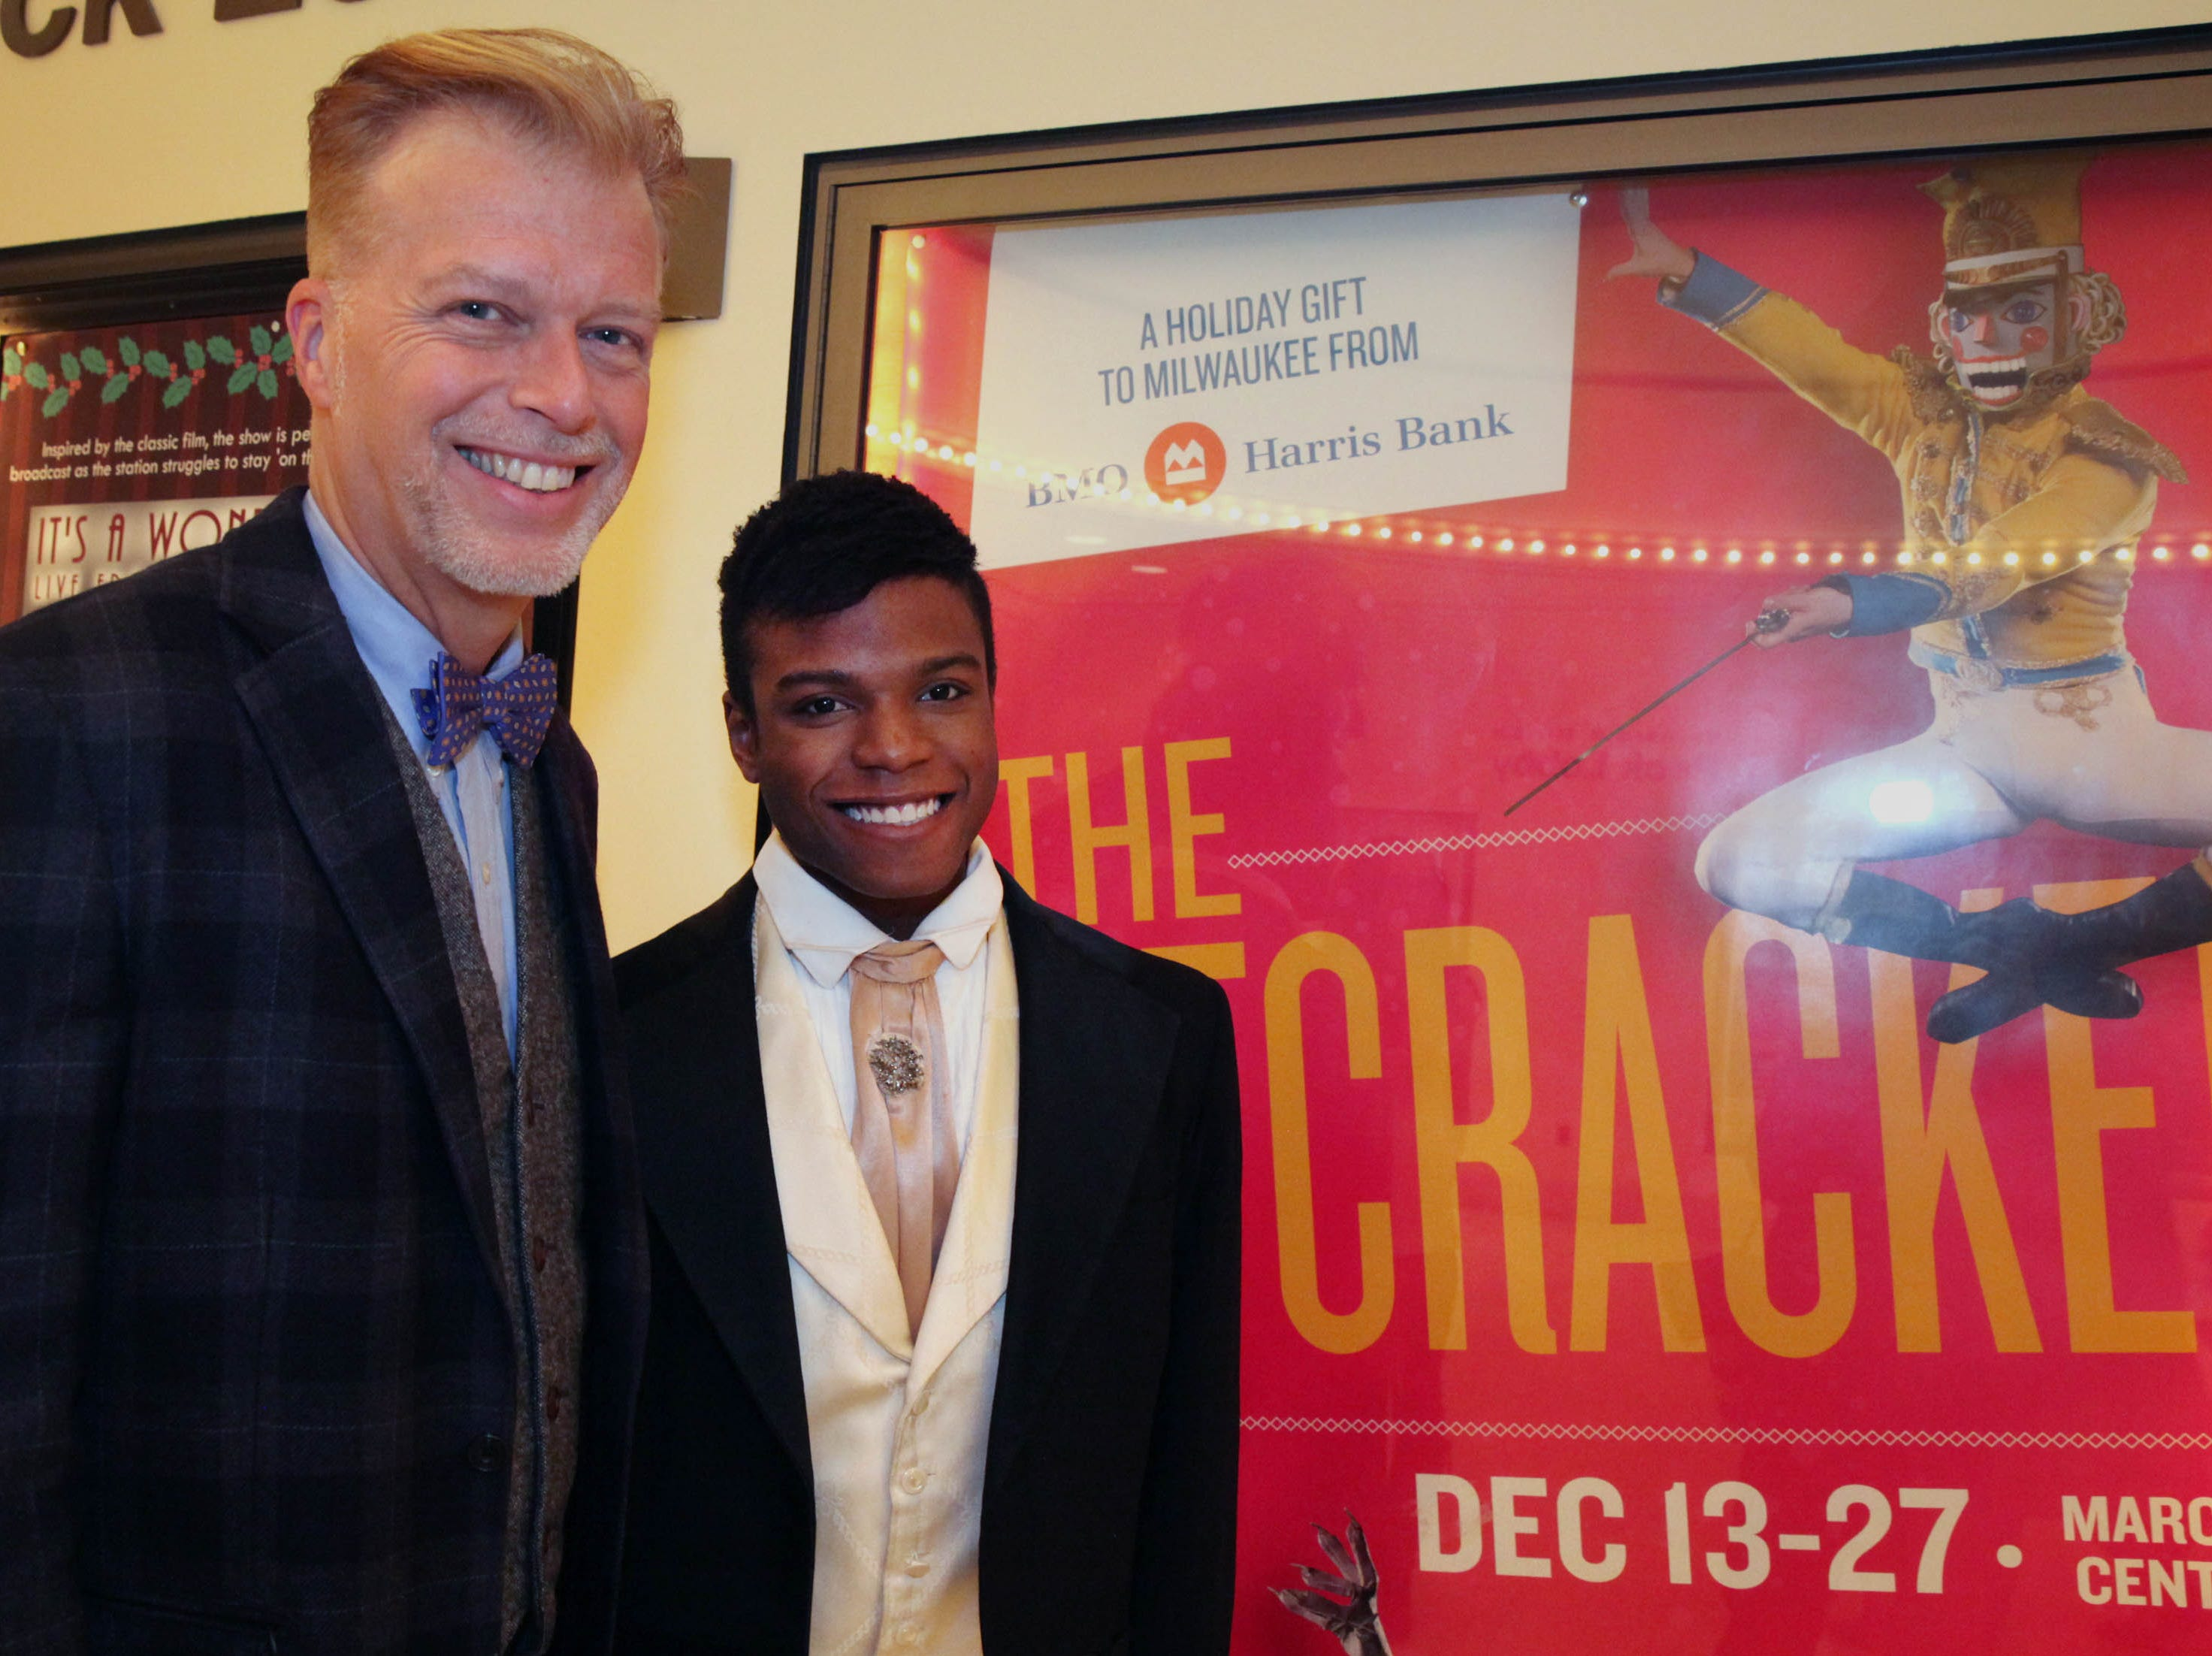 """Acee Laird, 23, a Milwaukee kid from the streets, with his adopted father Allan Laird. They gathered for a picture before Acee performs  in The Nutcracker at the Marcus Center for the Performing Arts.  Laird has a remarkable story about getting into the Milwaukee Ballet's training league team (it's called Milwaukee Ballet II, and it's the training grounds for young people to try to become professional dancers. It's an apprenticeship program run a little big like dancer's college). Laird is a former MPS student, who was adopted by a special education teacher he grew to know at Sherman Elementary School when he was about 11. His father, Allan Laird, fought the courts to adopt Acee, who was living in an abusive home.  He then proceeded to not only help Acee learn how to read and write, which he barely knew how to do in middle school, but how to chase a dream. Laird helped Acee enroll in ballet, which he fell in love with, and after fast-tracking through the stages, Acee finally made it into the ballet's """"B"""" company in 2014. He's in the Nutcracker through the end of the month in a variety of roles, and hopes to apply for jobs as a professional dancer after his apprenticeship at Milwaukee Ballet ends."""